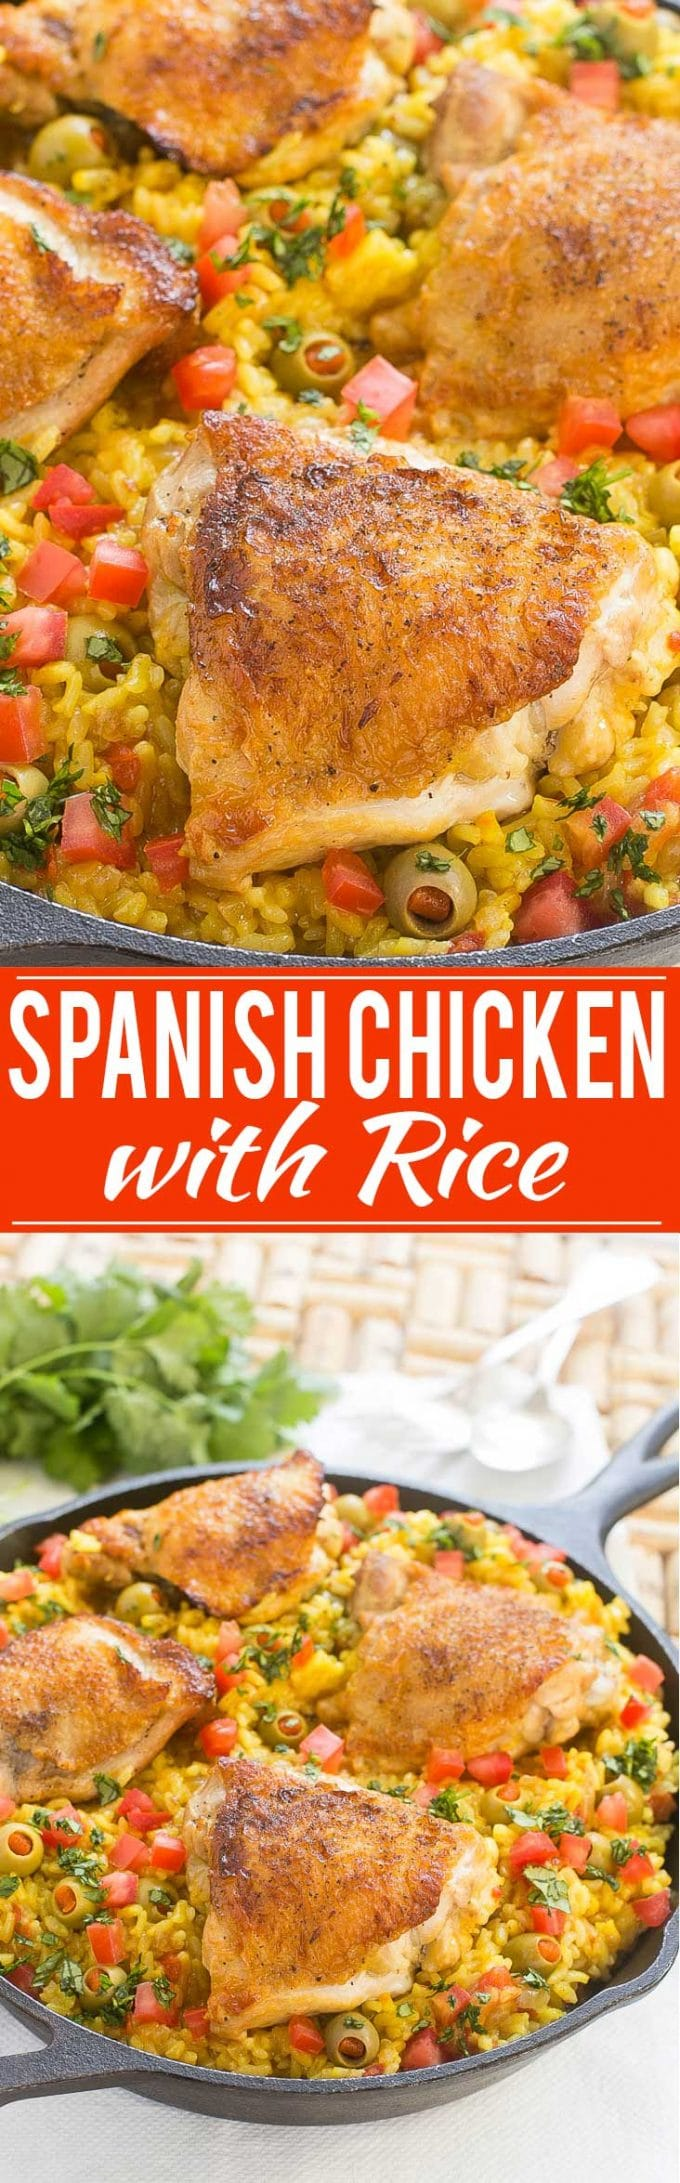 Arroz con pollo recipes easy